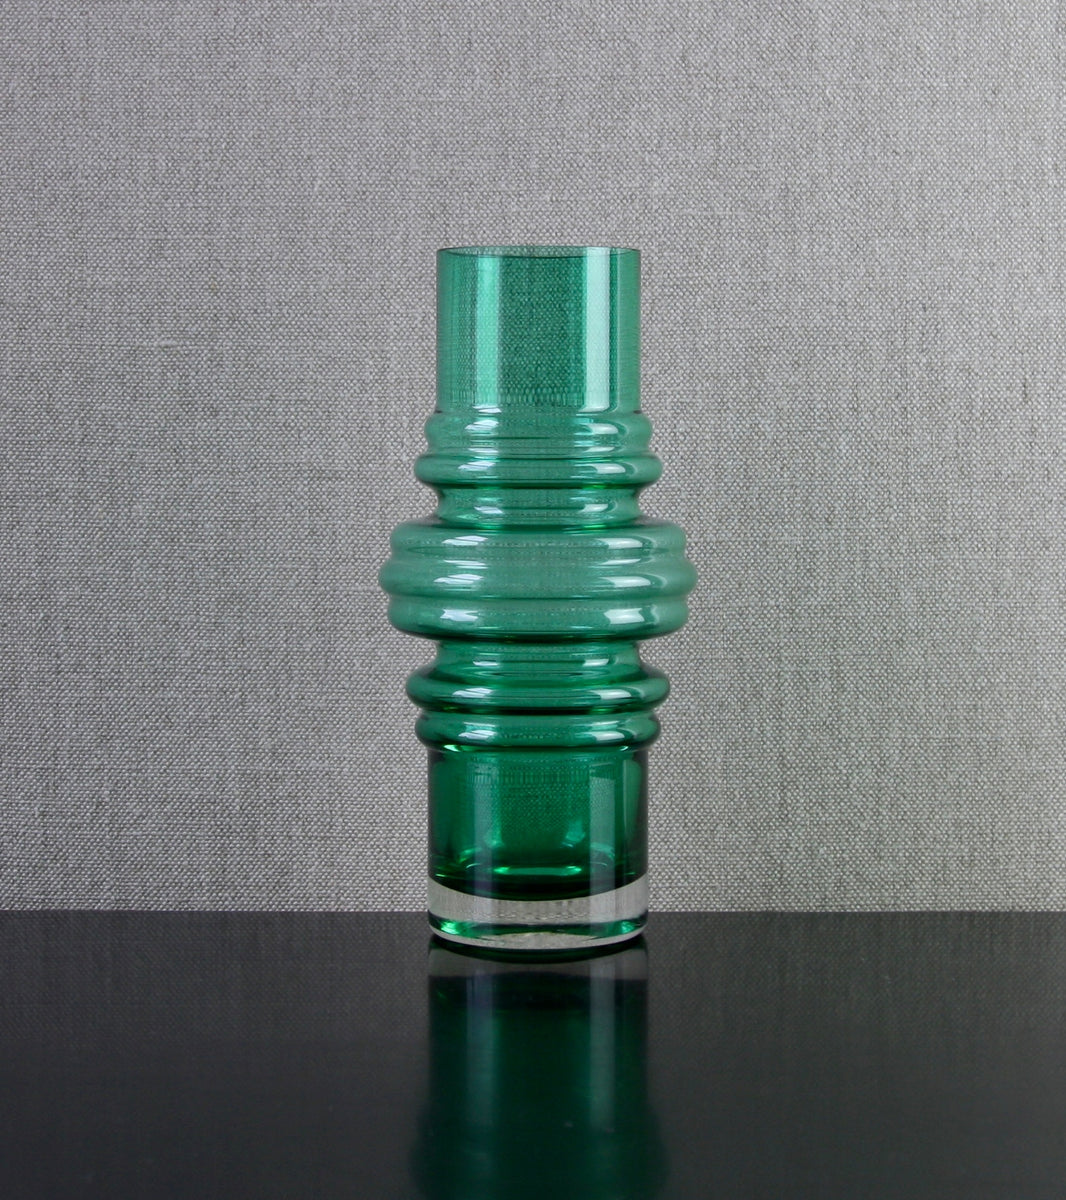 "Malachite Green Model 1516 ""Tulppaani"" (Tulip) Vase by Tamara Aladin, 1971"